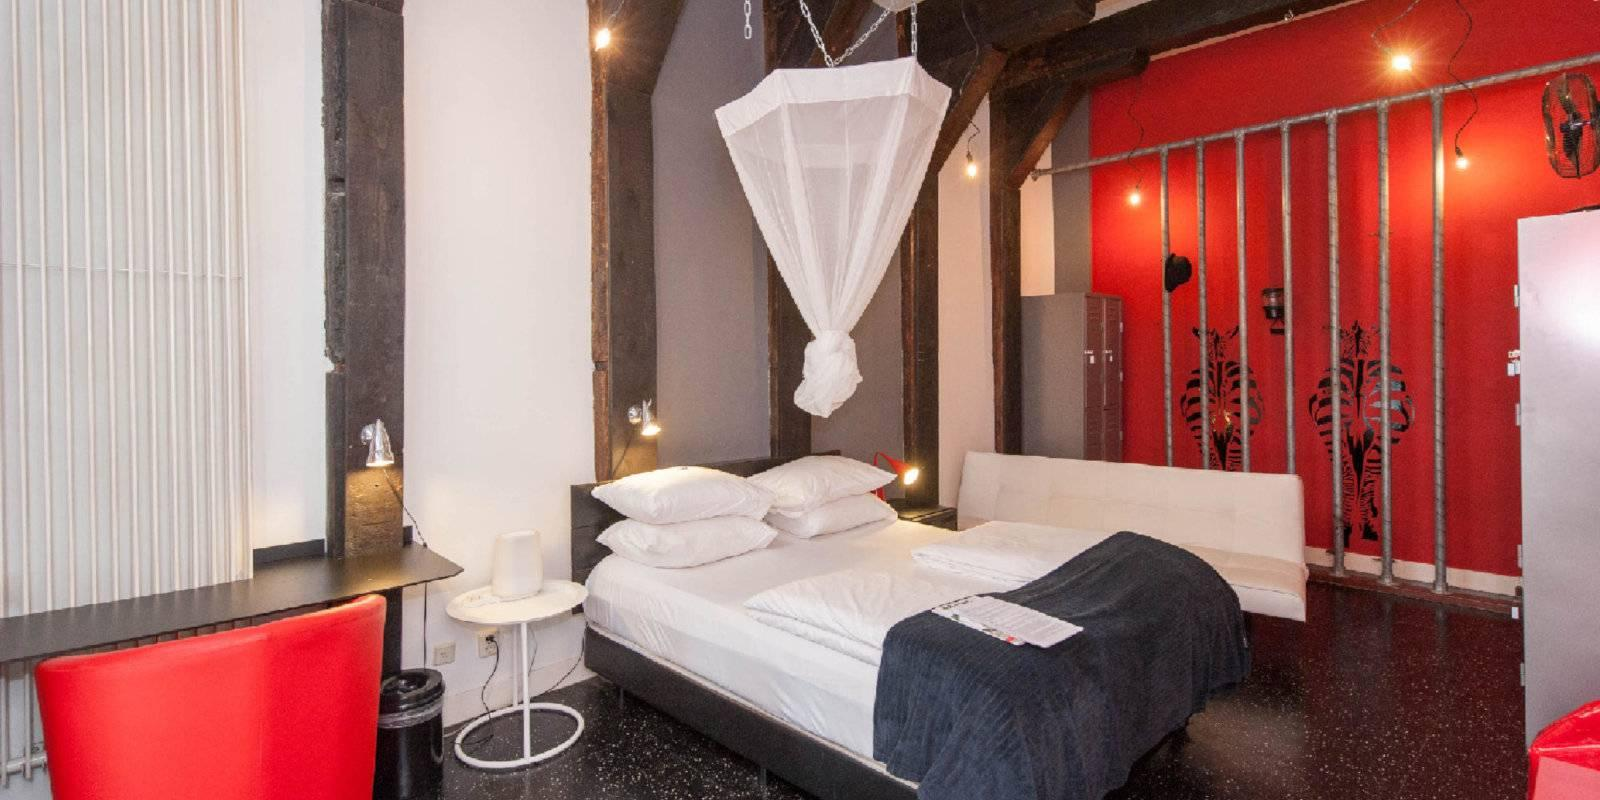 Mauro Mansion is a chilled out hotel in Amsterdam that used to be a sex hotel and still has a bit of a naughty vibe!